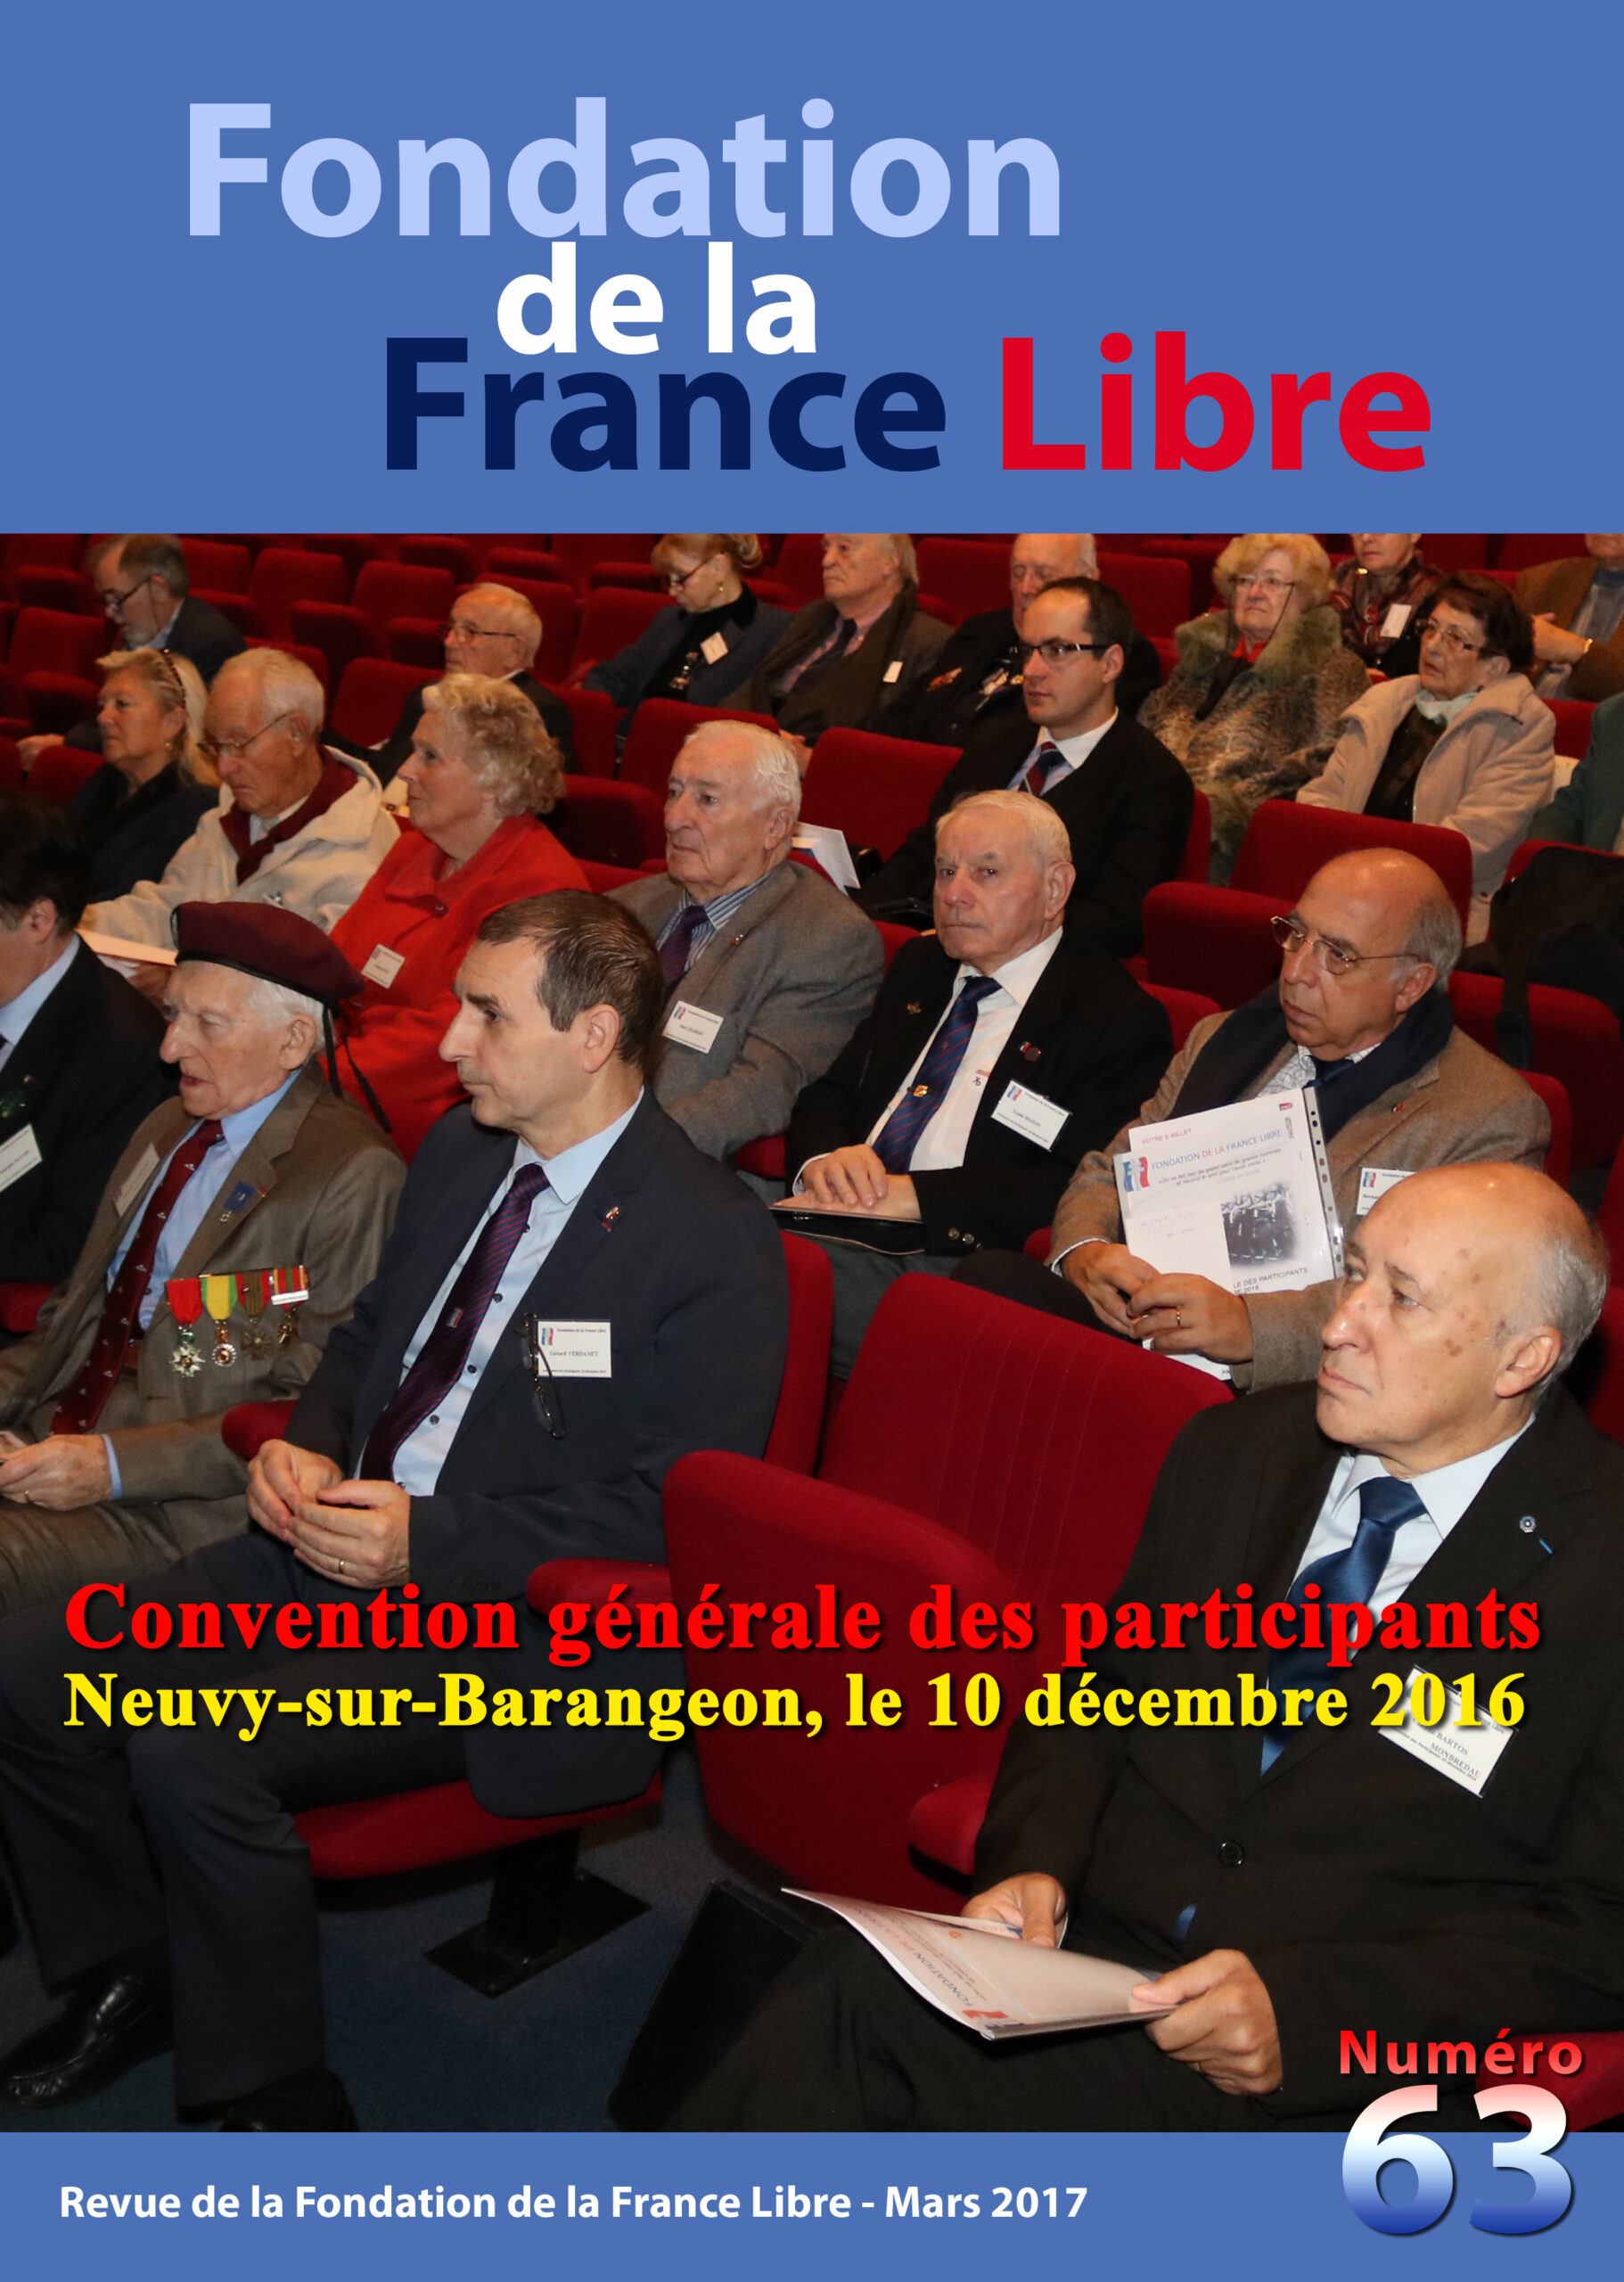 Fondation de la France Libre, n° 63, mars 2017